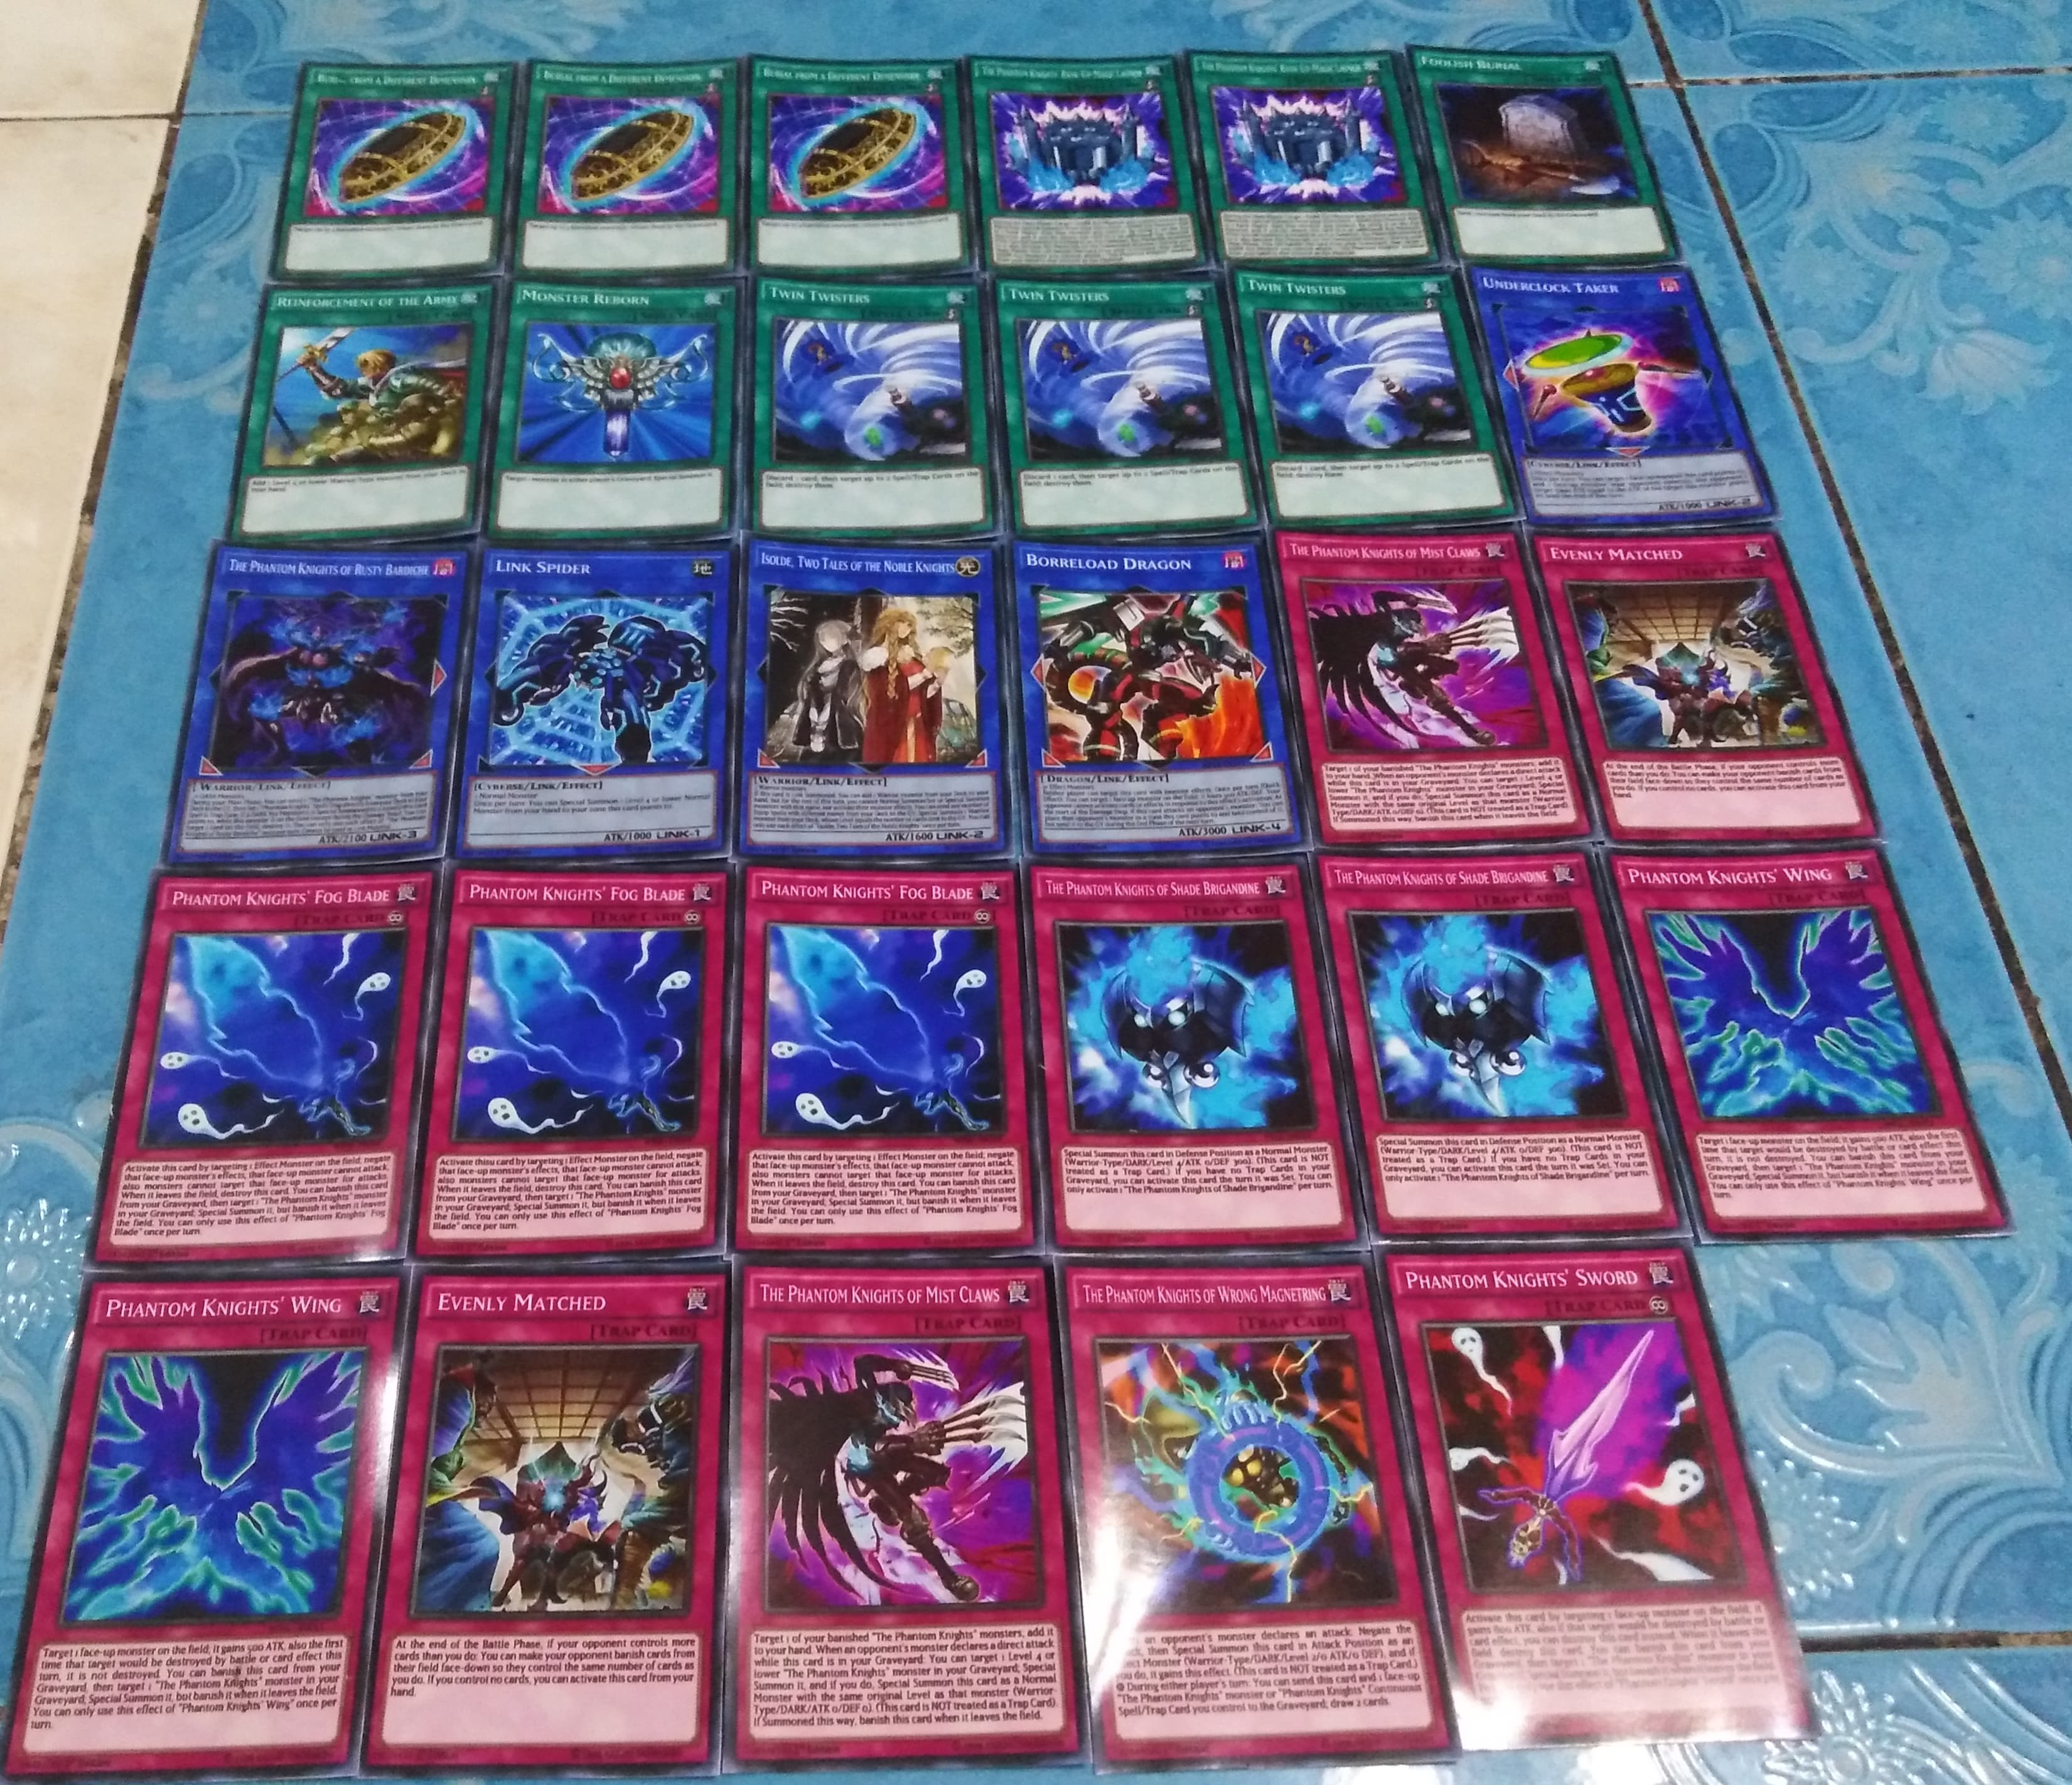 70 Yugioh cards - Phantom Knights Structured Deck